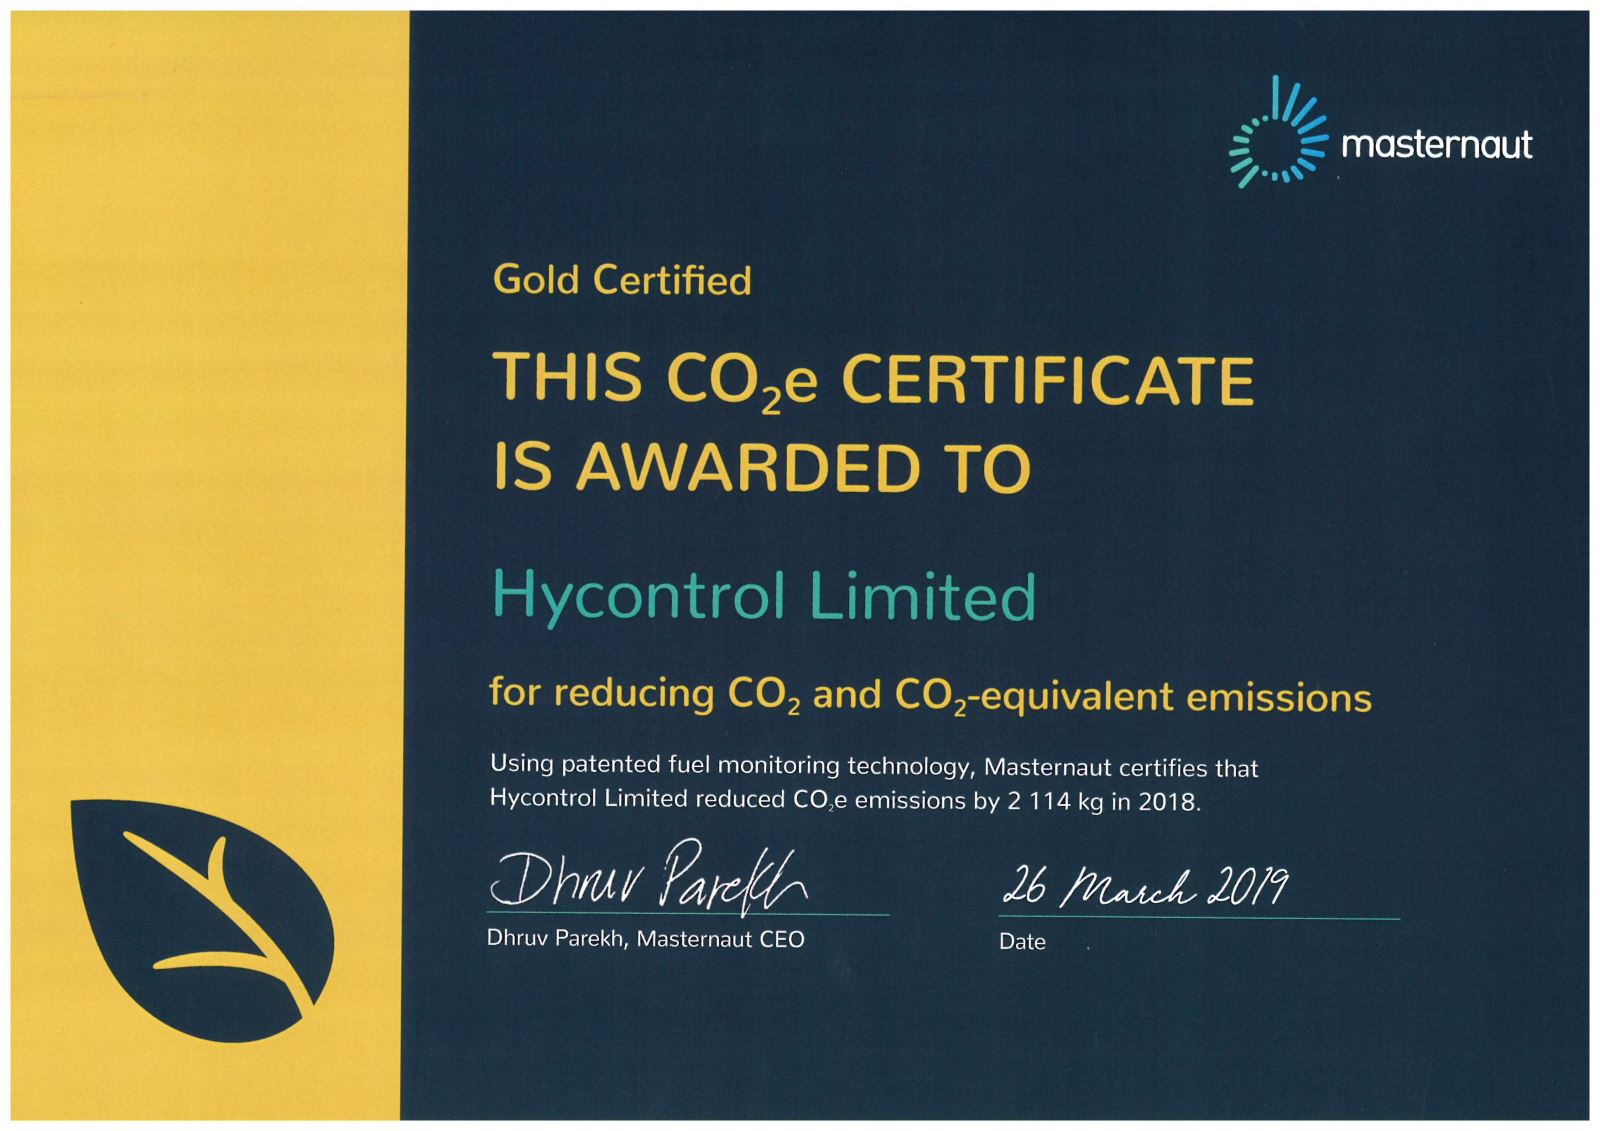 Hycontrol CO2 reduction certificate